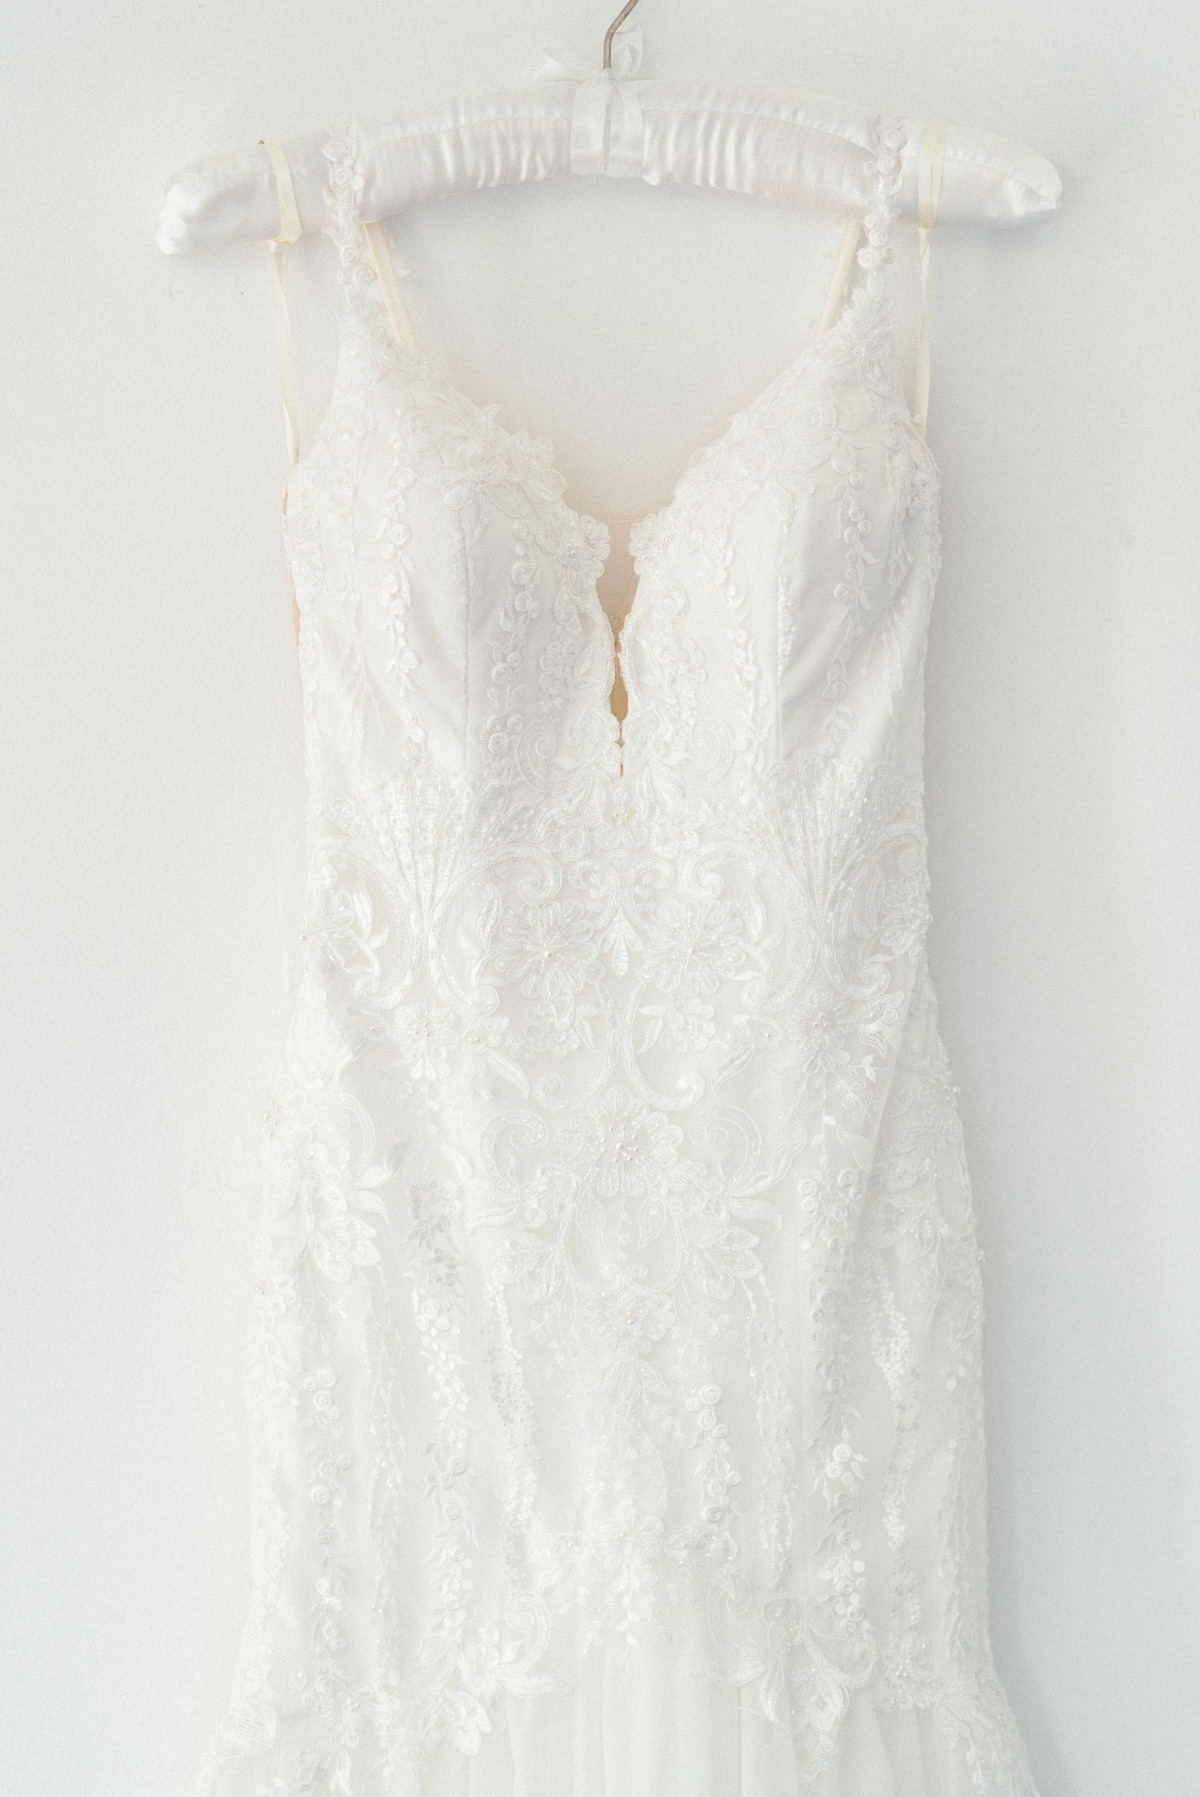 stunning embroidered gown with crystals